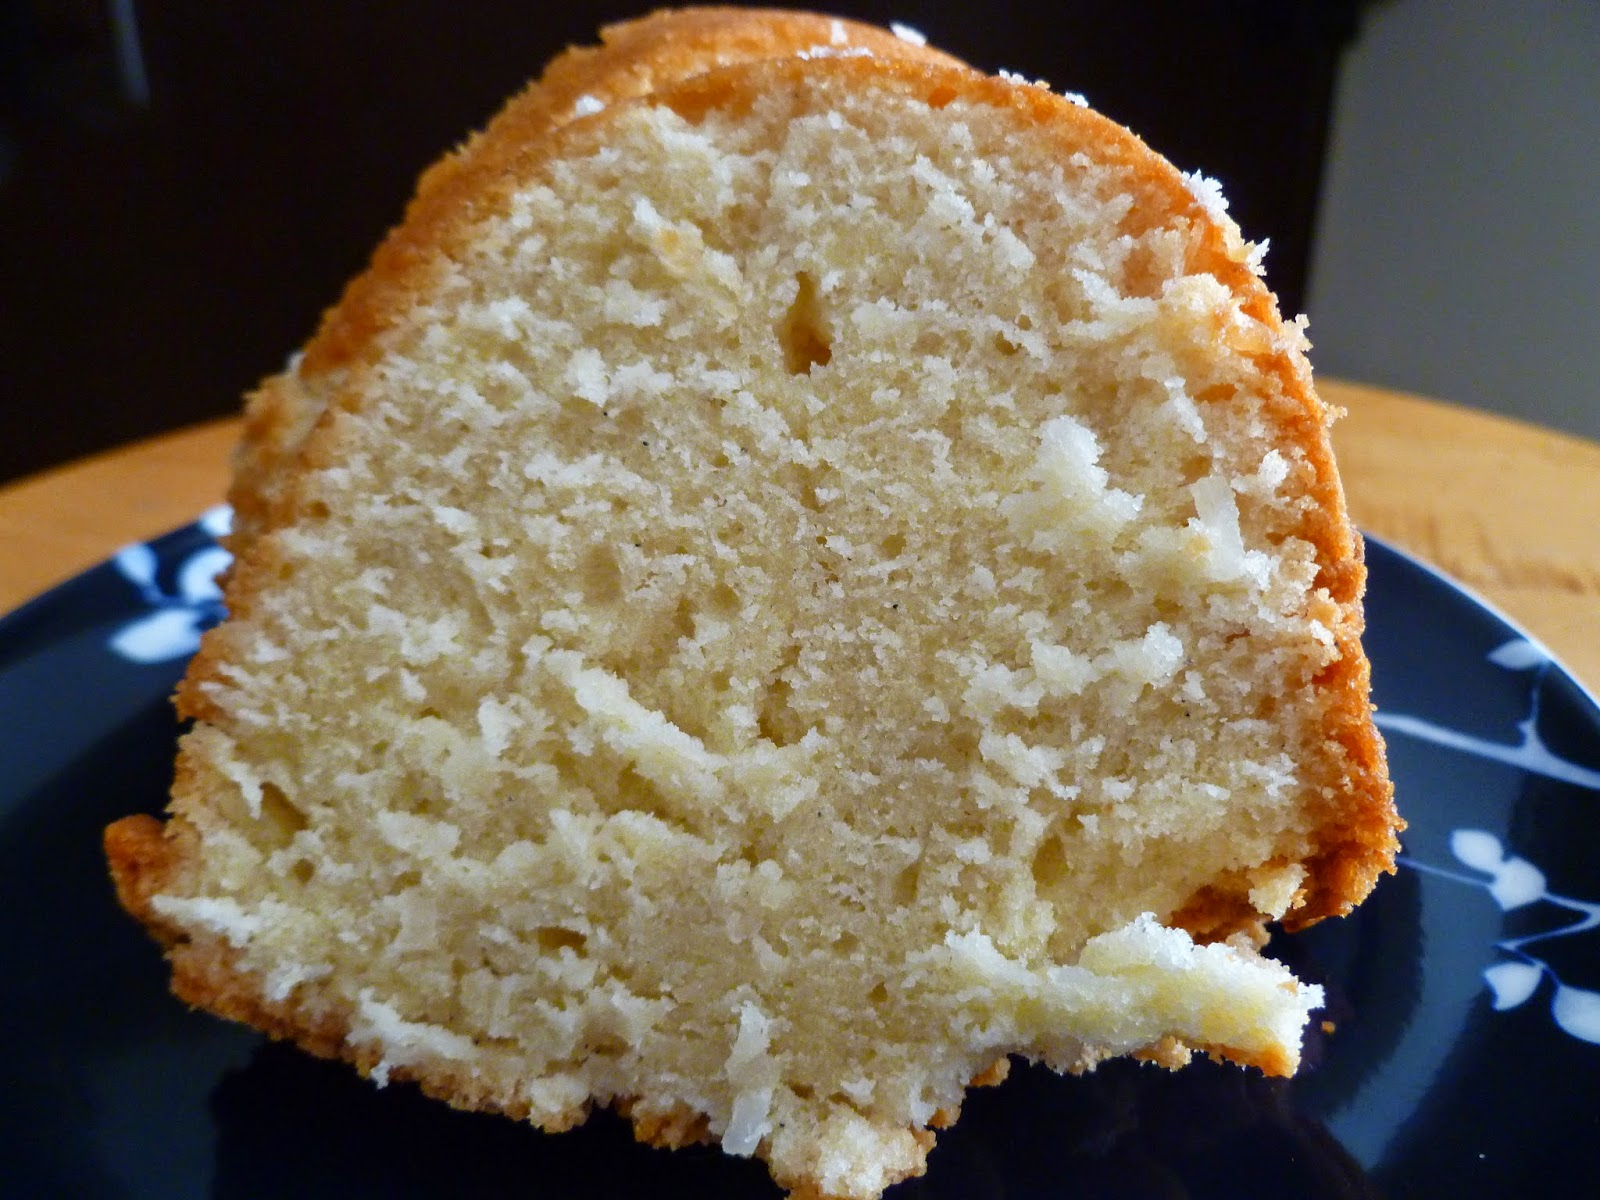 The Pastry Chef's Baking: Coconut Cream Cheese Pound Cake